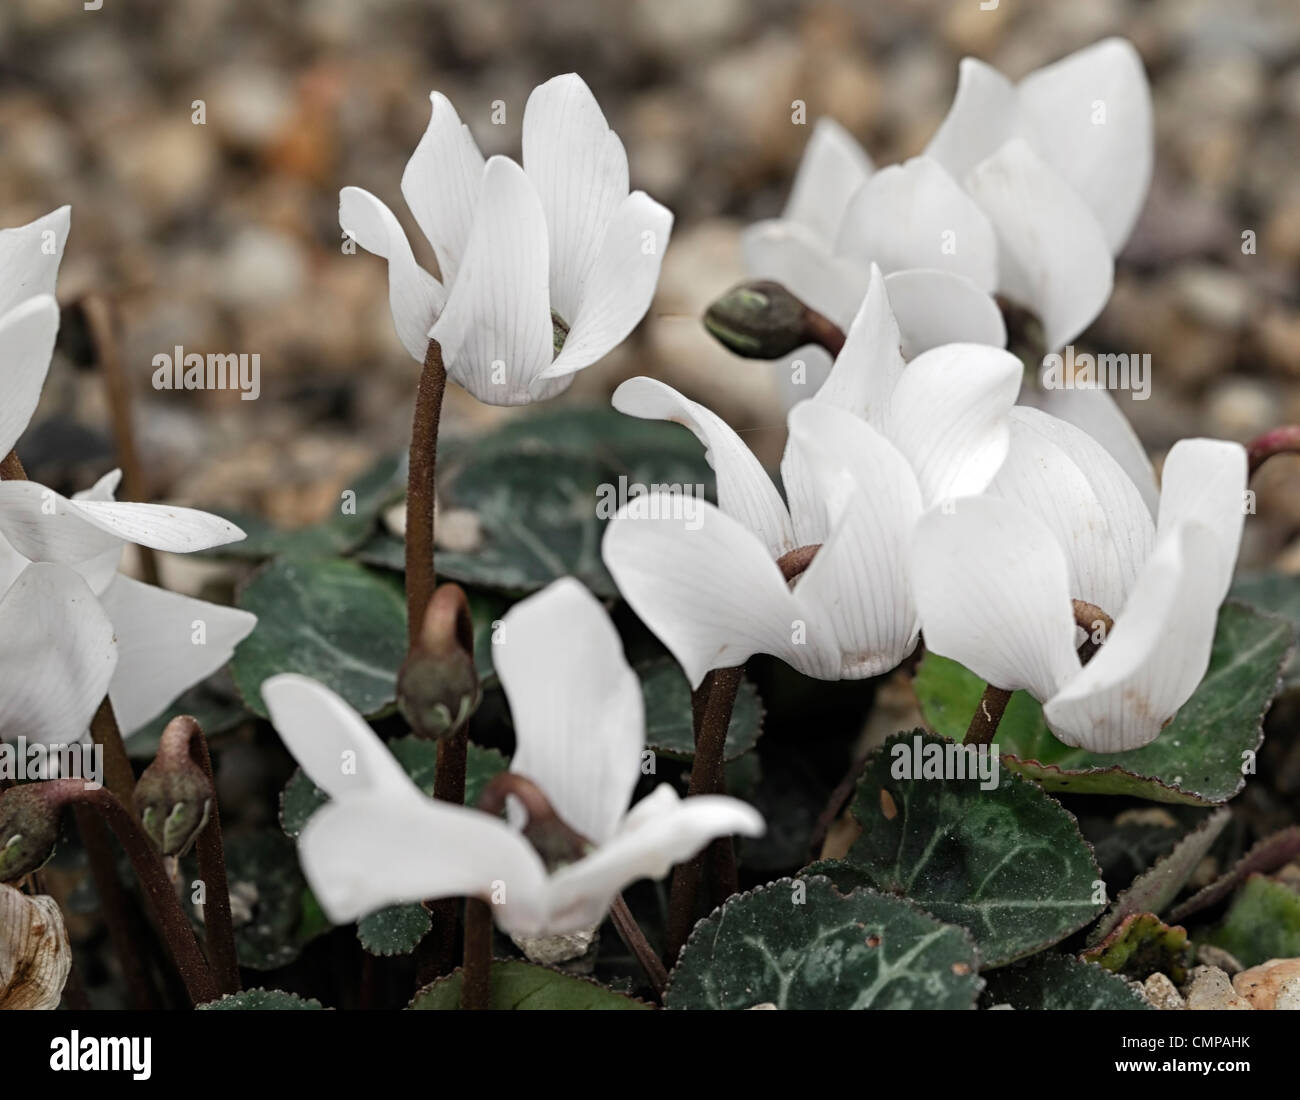 cyclamen sierra mixed hybrid white flowers marbled green foliage leaves perennial spring flowering bloom blossom - Stock Image